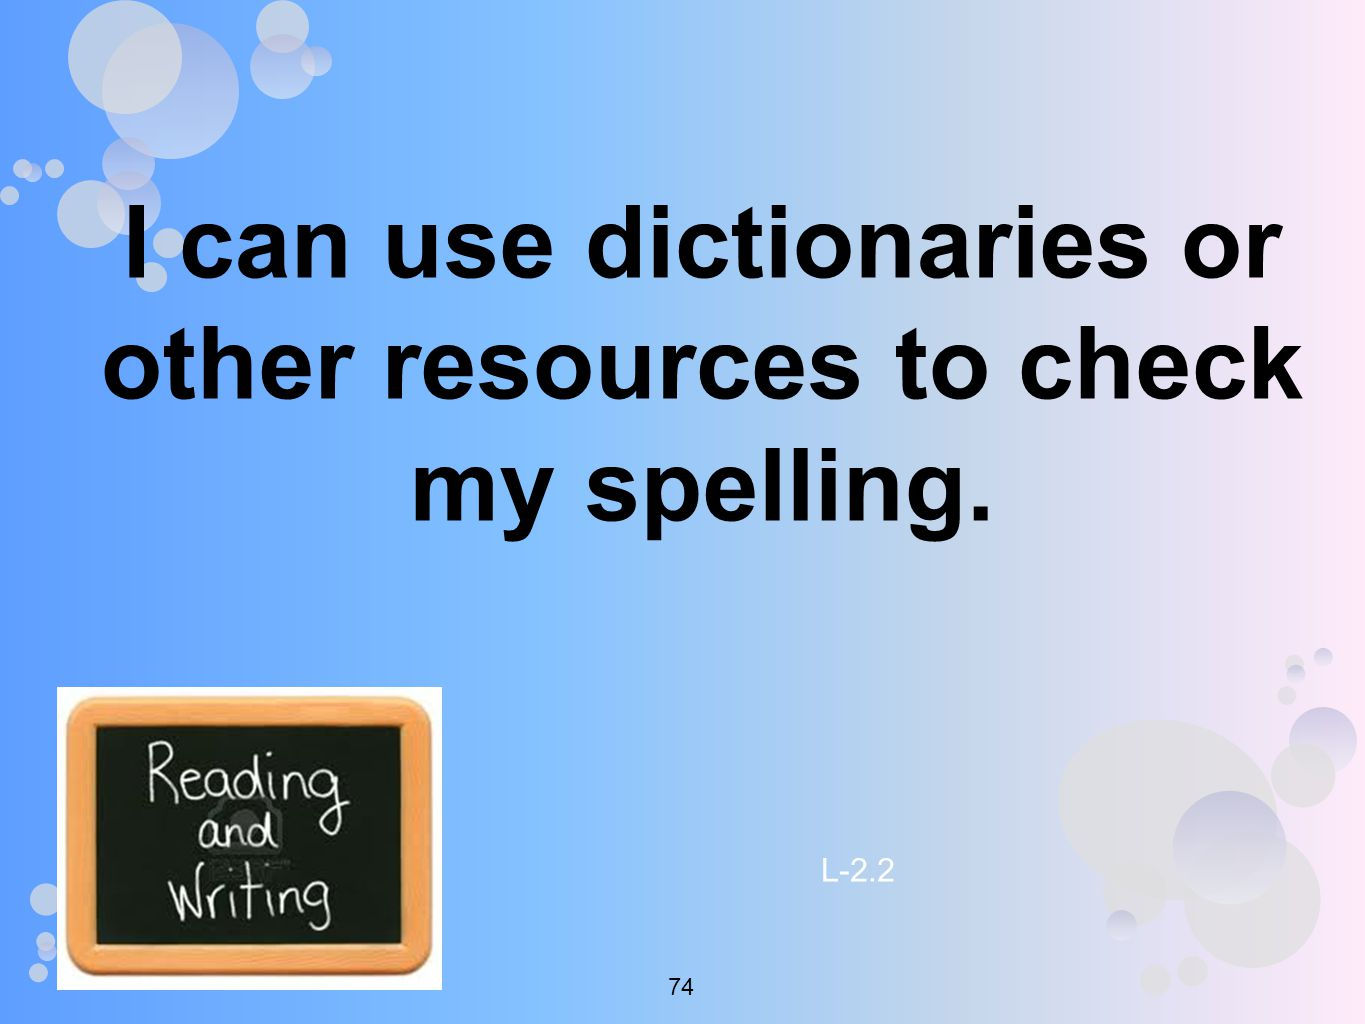 I can use dictionaries or other resources to check my spelling. L